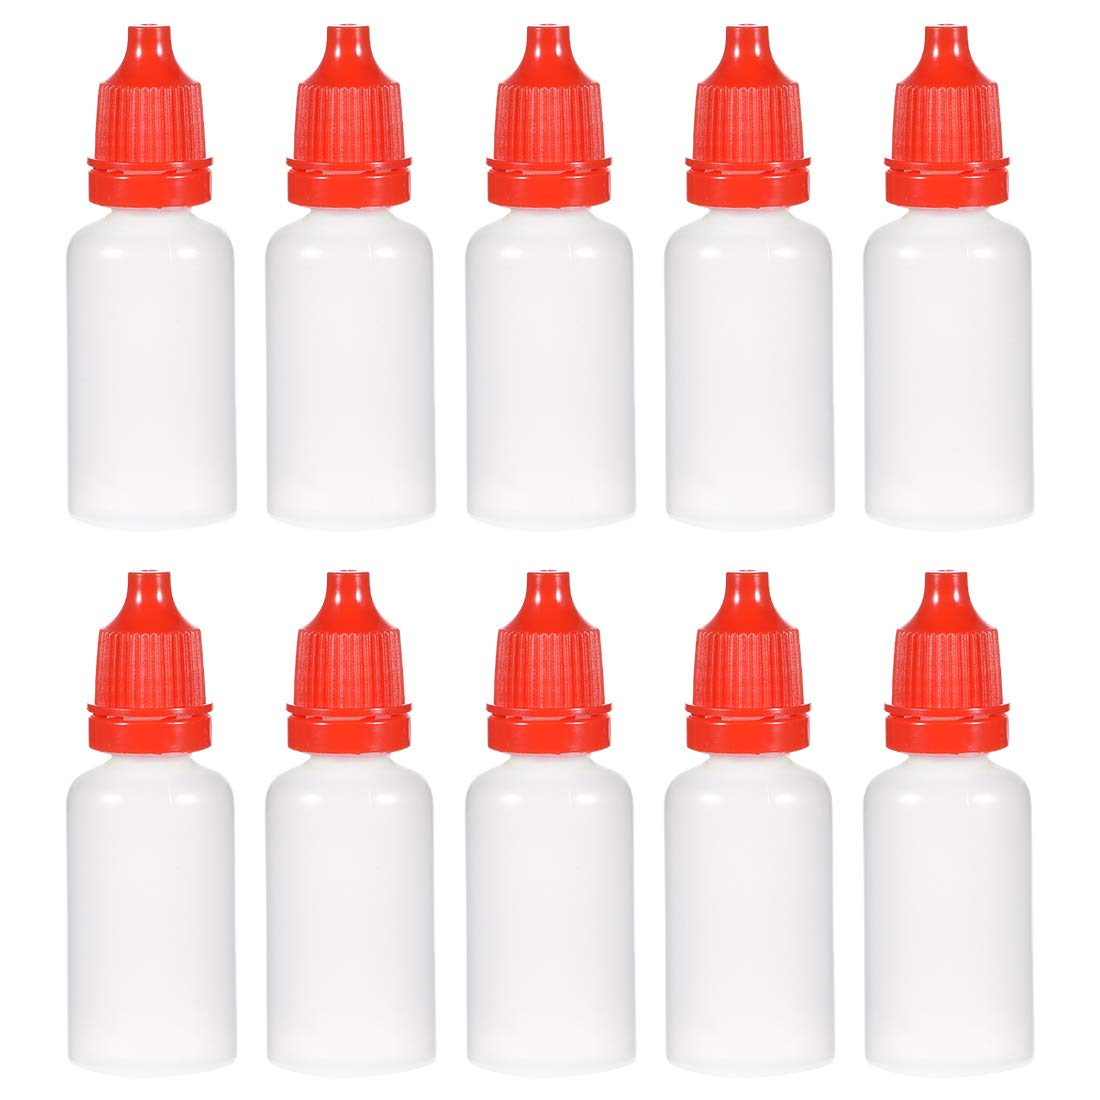 uxcell Plastic Dropper Bottles, 20ml/0.68 oz Empty Squeezable Liquid Dropper Bottle with Childproof Cap, Red, Pack of 20